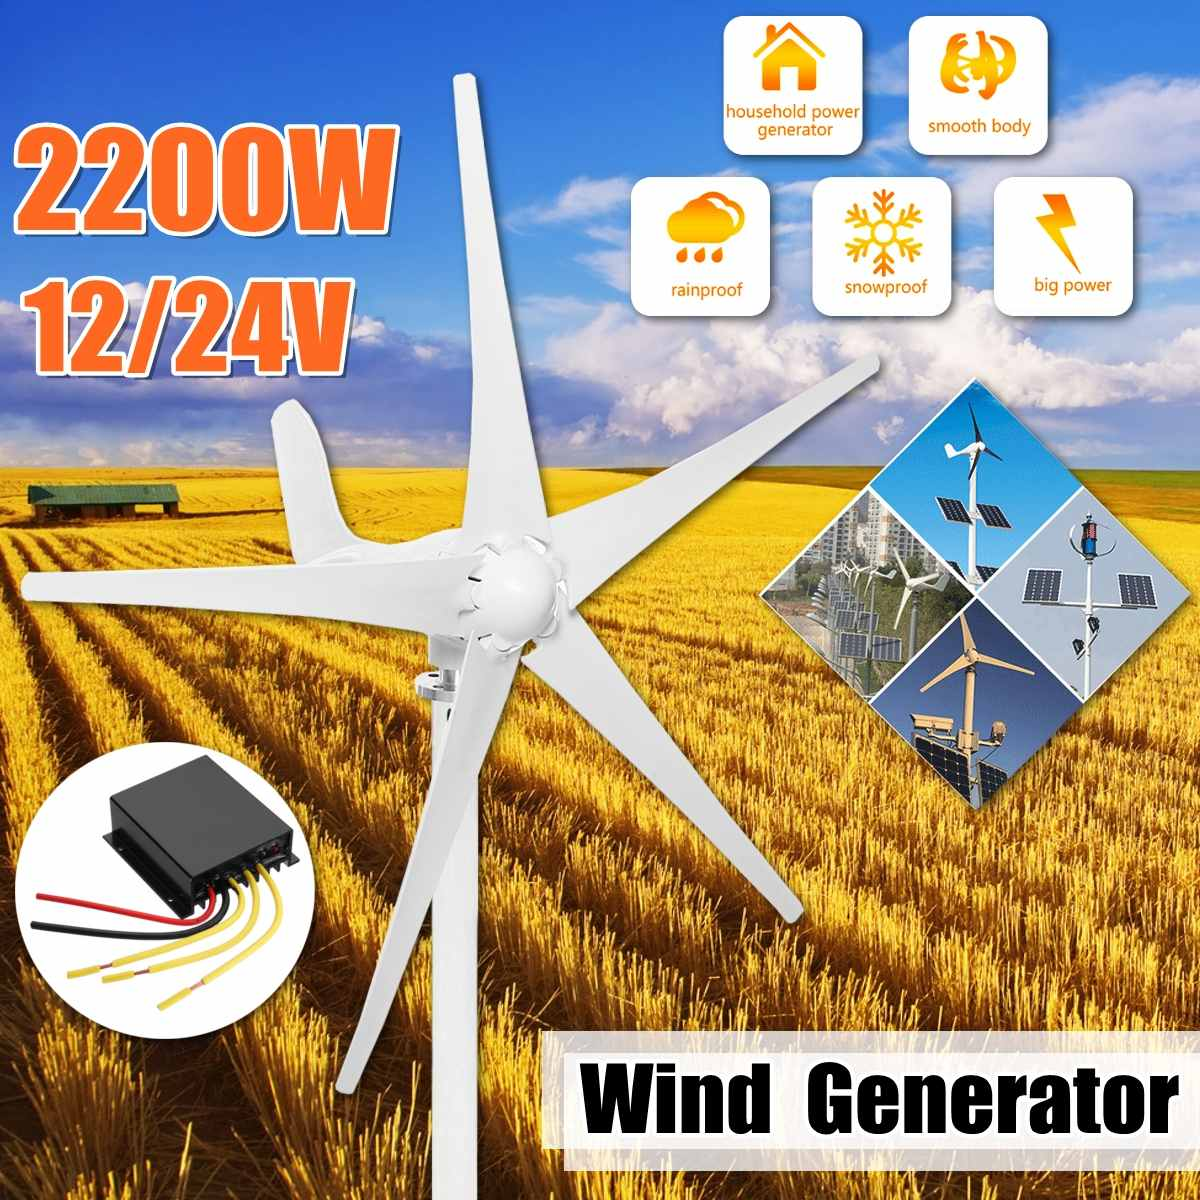 2200W 12/24V Horizontal-Axis 5-Blades Wind T urbine Generator 3 Phase AC Permanent Magnet Synchronous Residential Generator